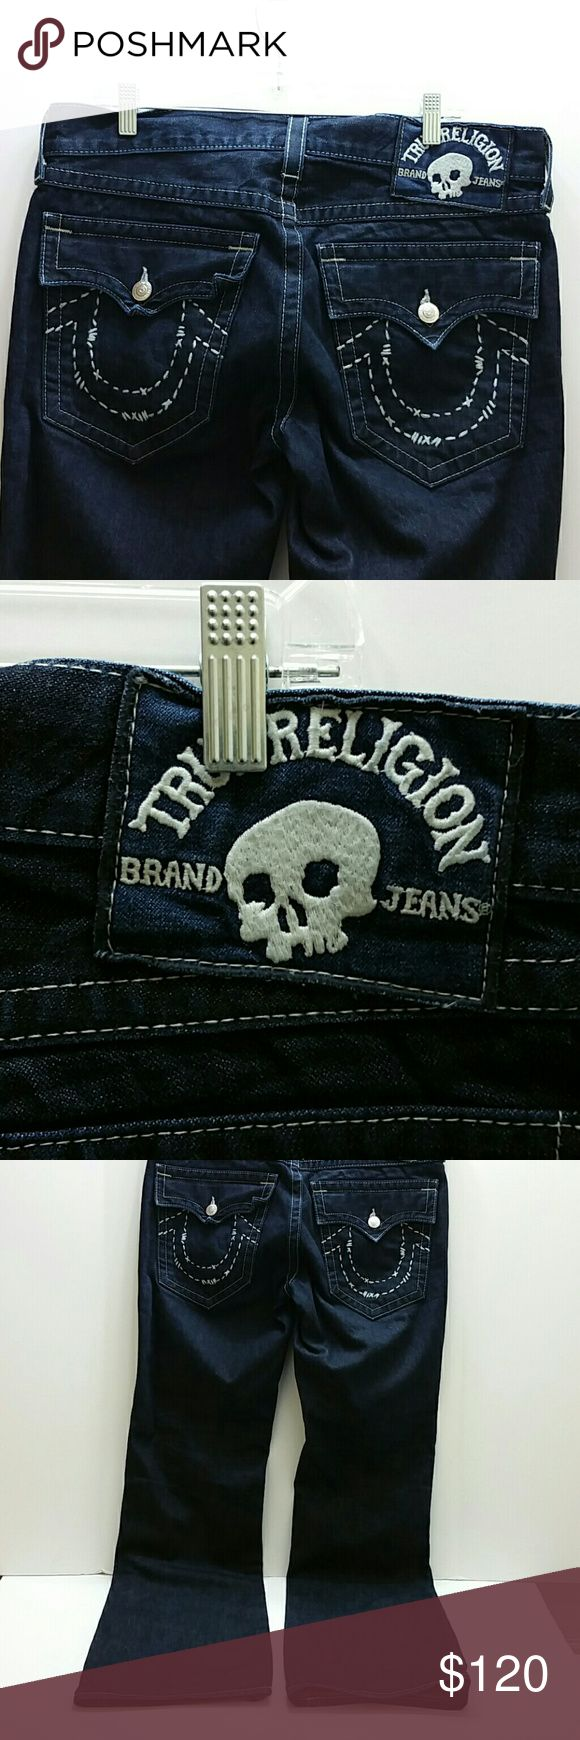 TRUE RELIGION MEN'S JEANS VERY CLEAN INSIDE-OUT   BOOT CUT 34?32  MADE IN USA   SKE # VM True Religion Jeans Bootcut